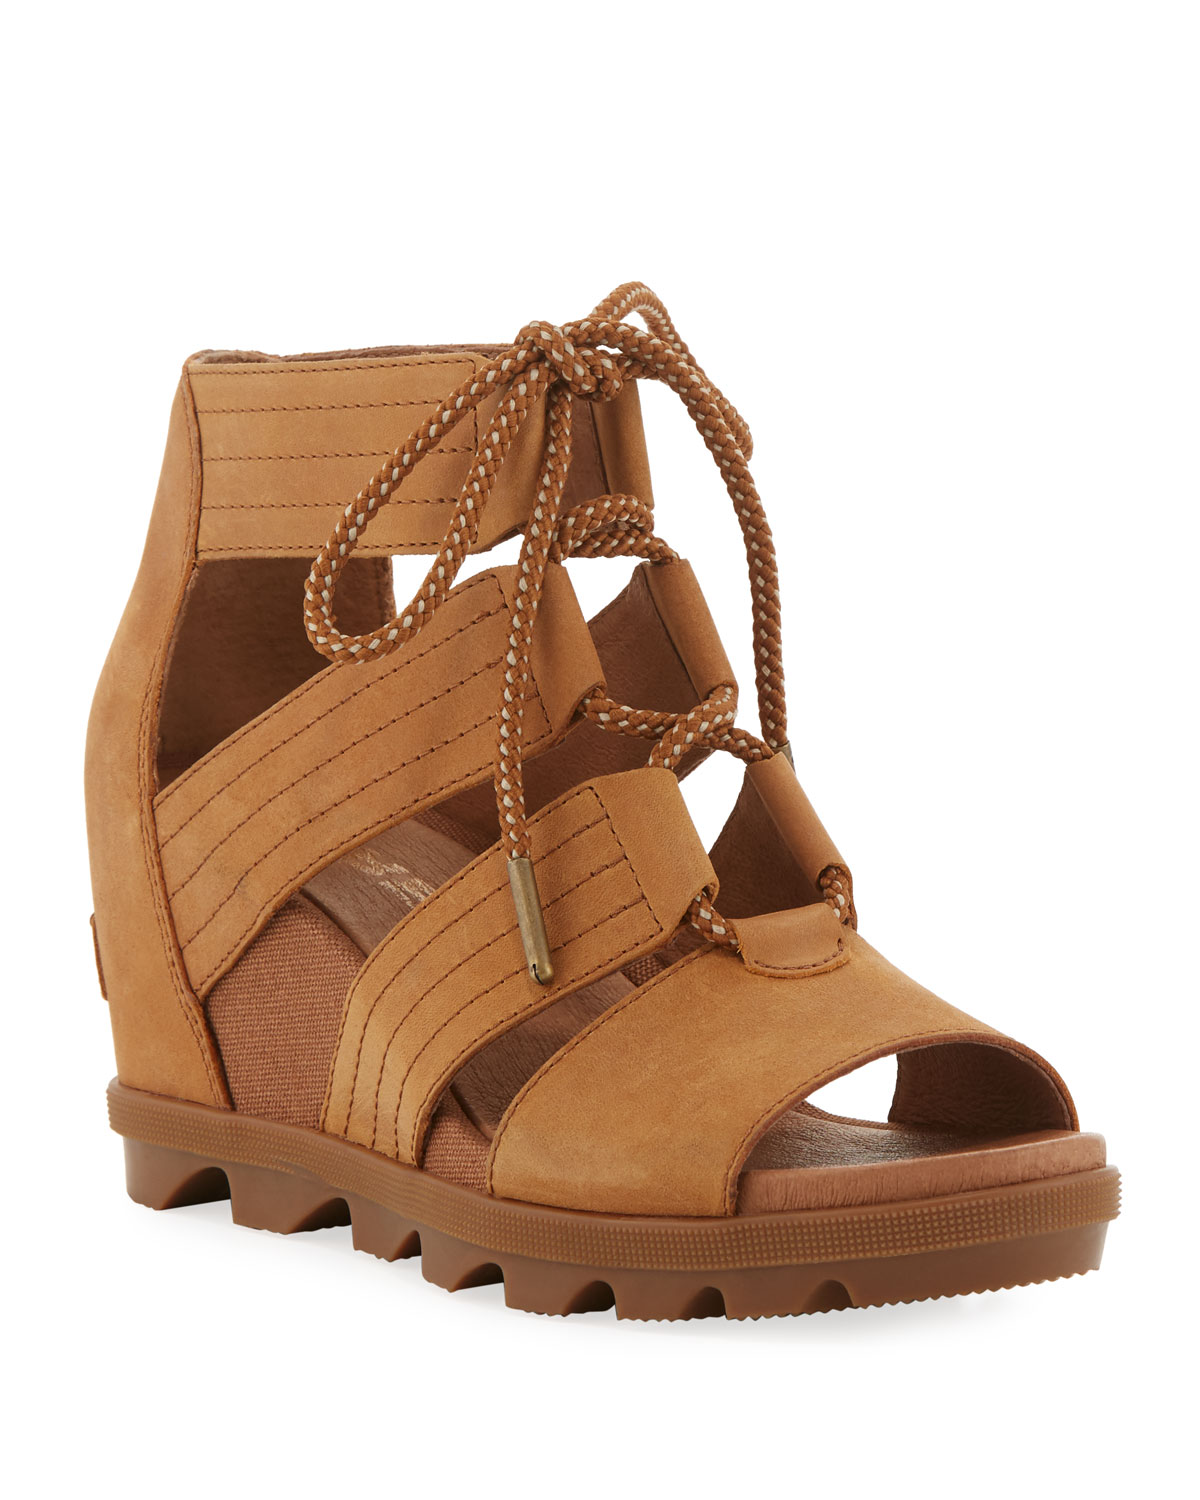 c9873af719a7 Sorel Joanie II Lace-Up Leather Wedge Sandals